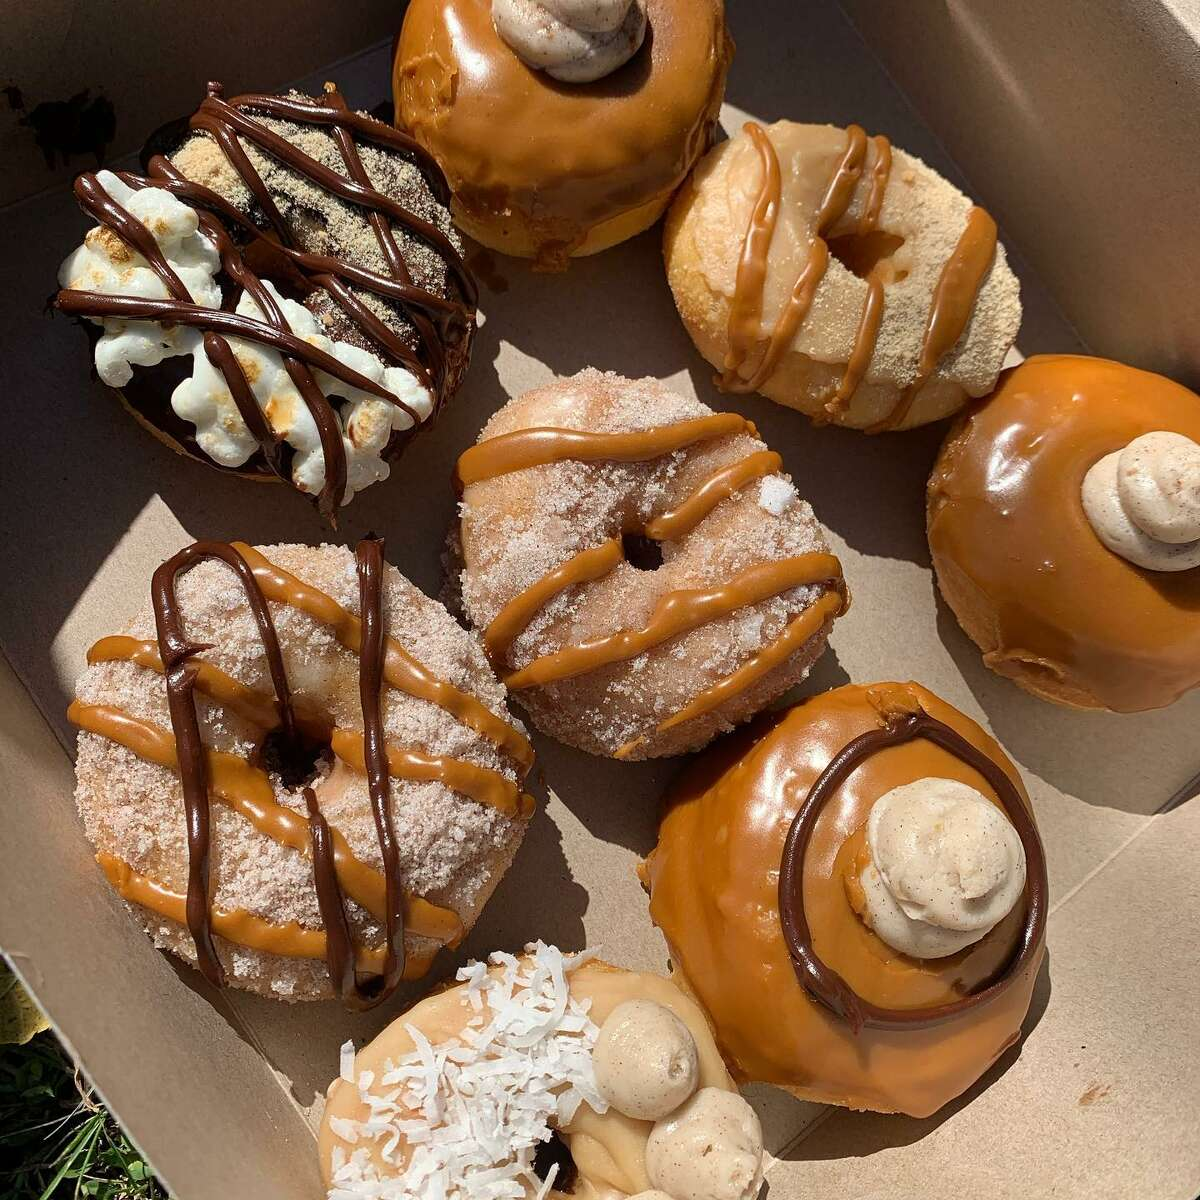 The eponymous creations from Cosmic Donuts in Kinderhook will be paired with beer from Fort Orange Brewing in Albany for the Dynamic Duos fundraiser.